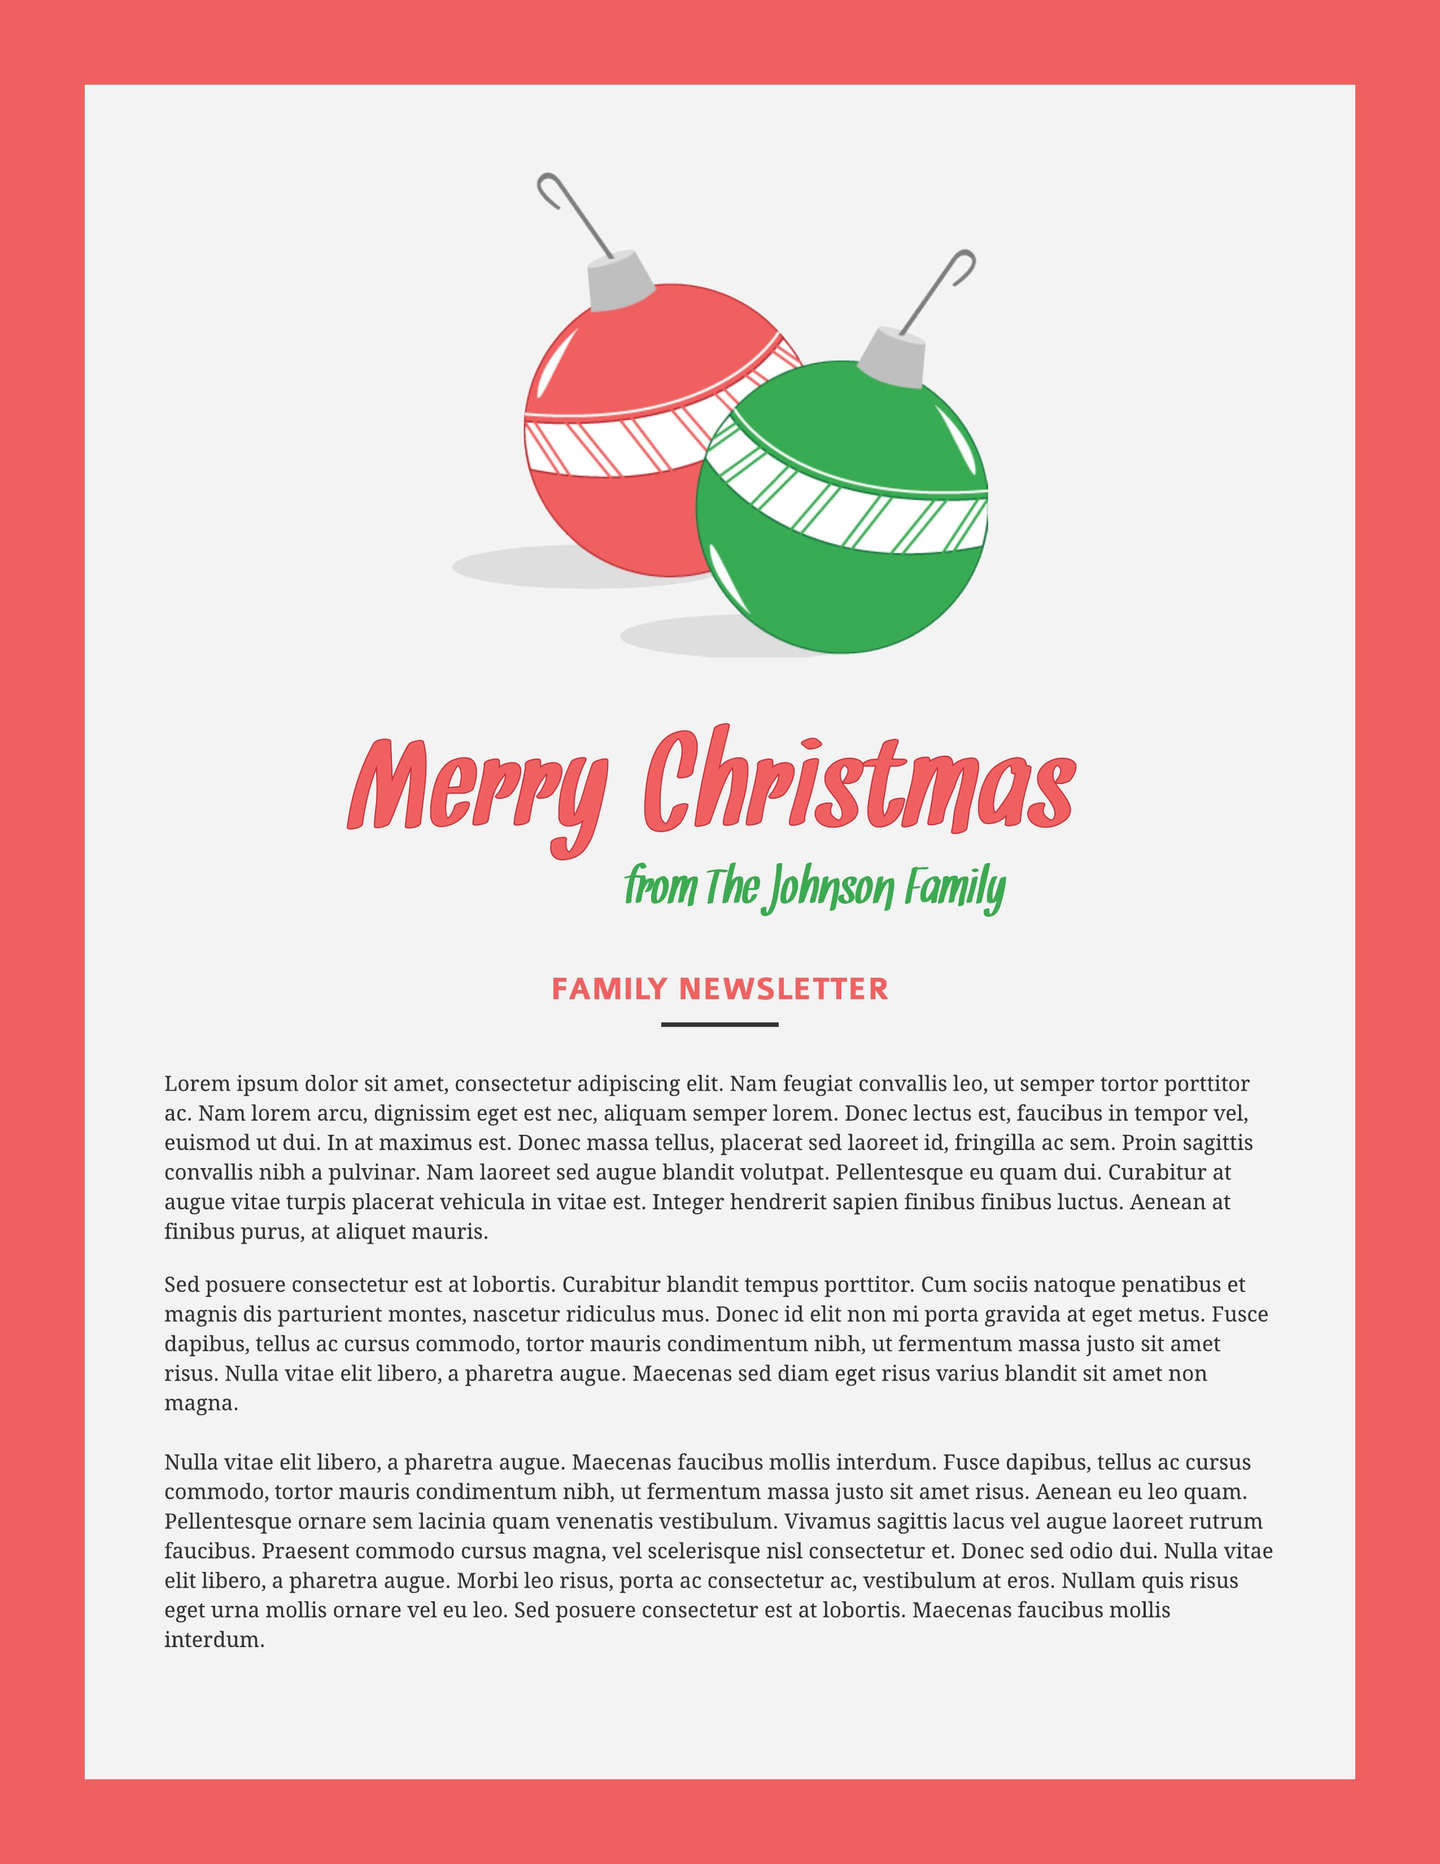 Free newsletter templates examples 10 free templates holiday christmas newsletter template magicingreecefo Images